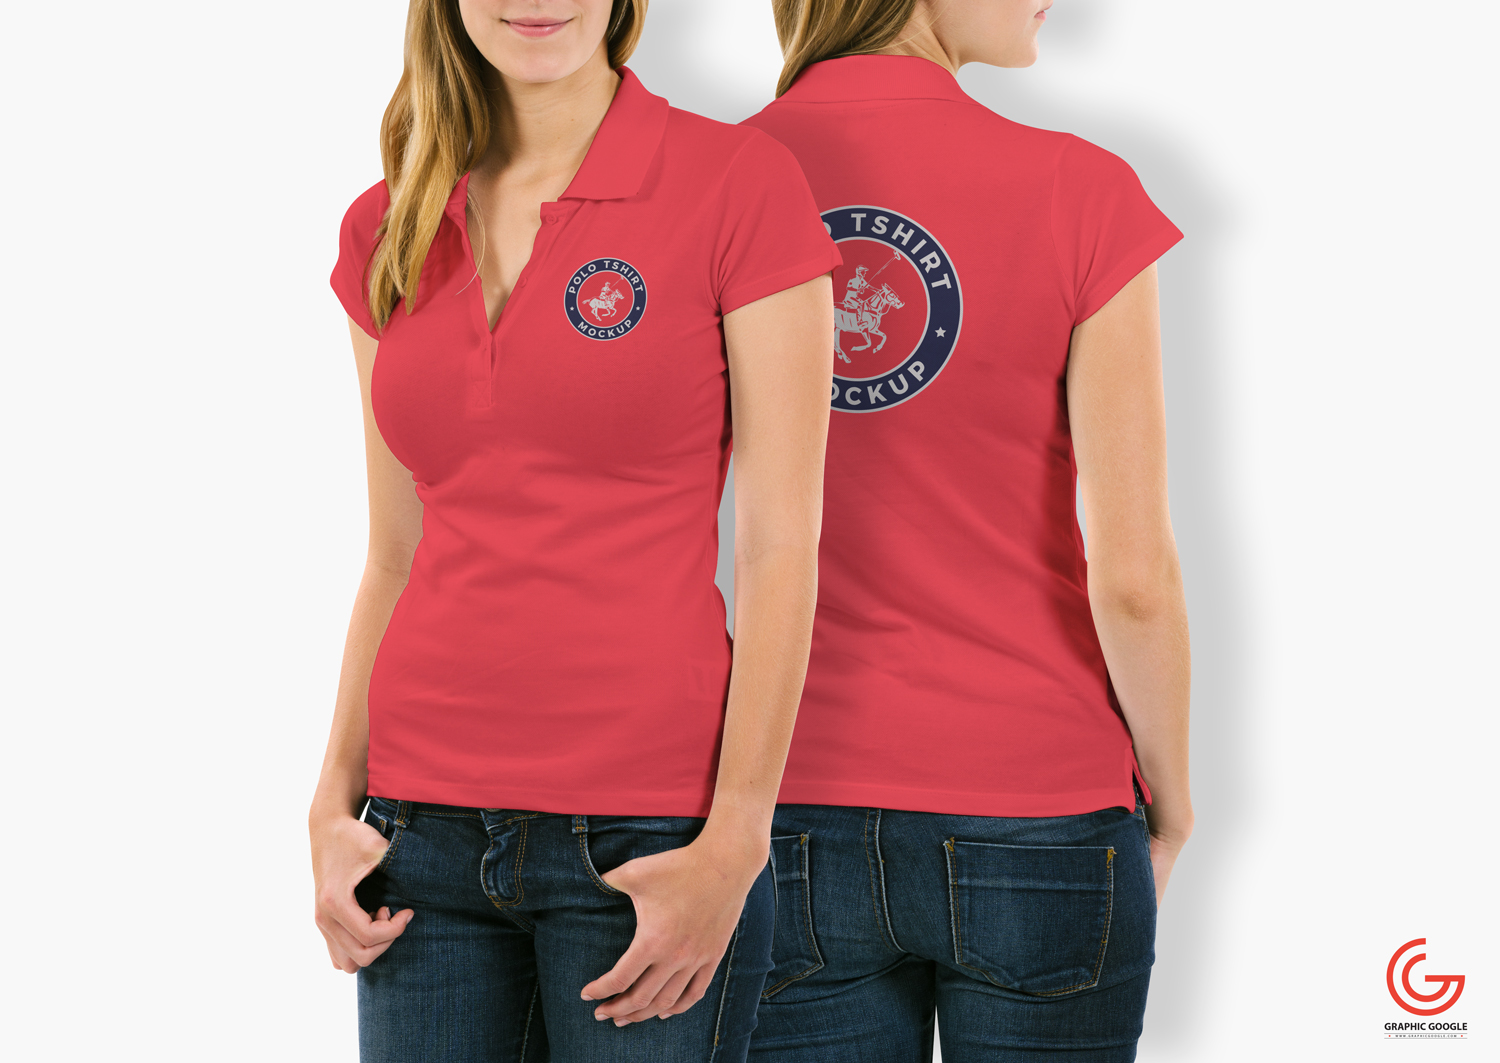 Free-Woman-With-Polo-T-Shirt-Mockup-PSD-3